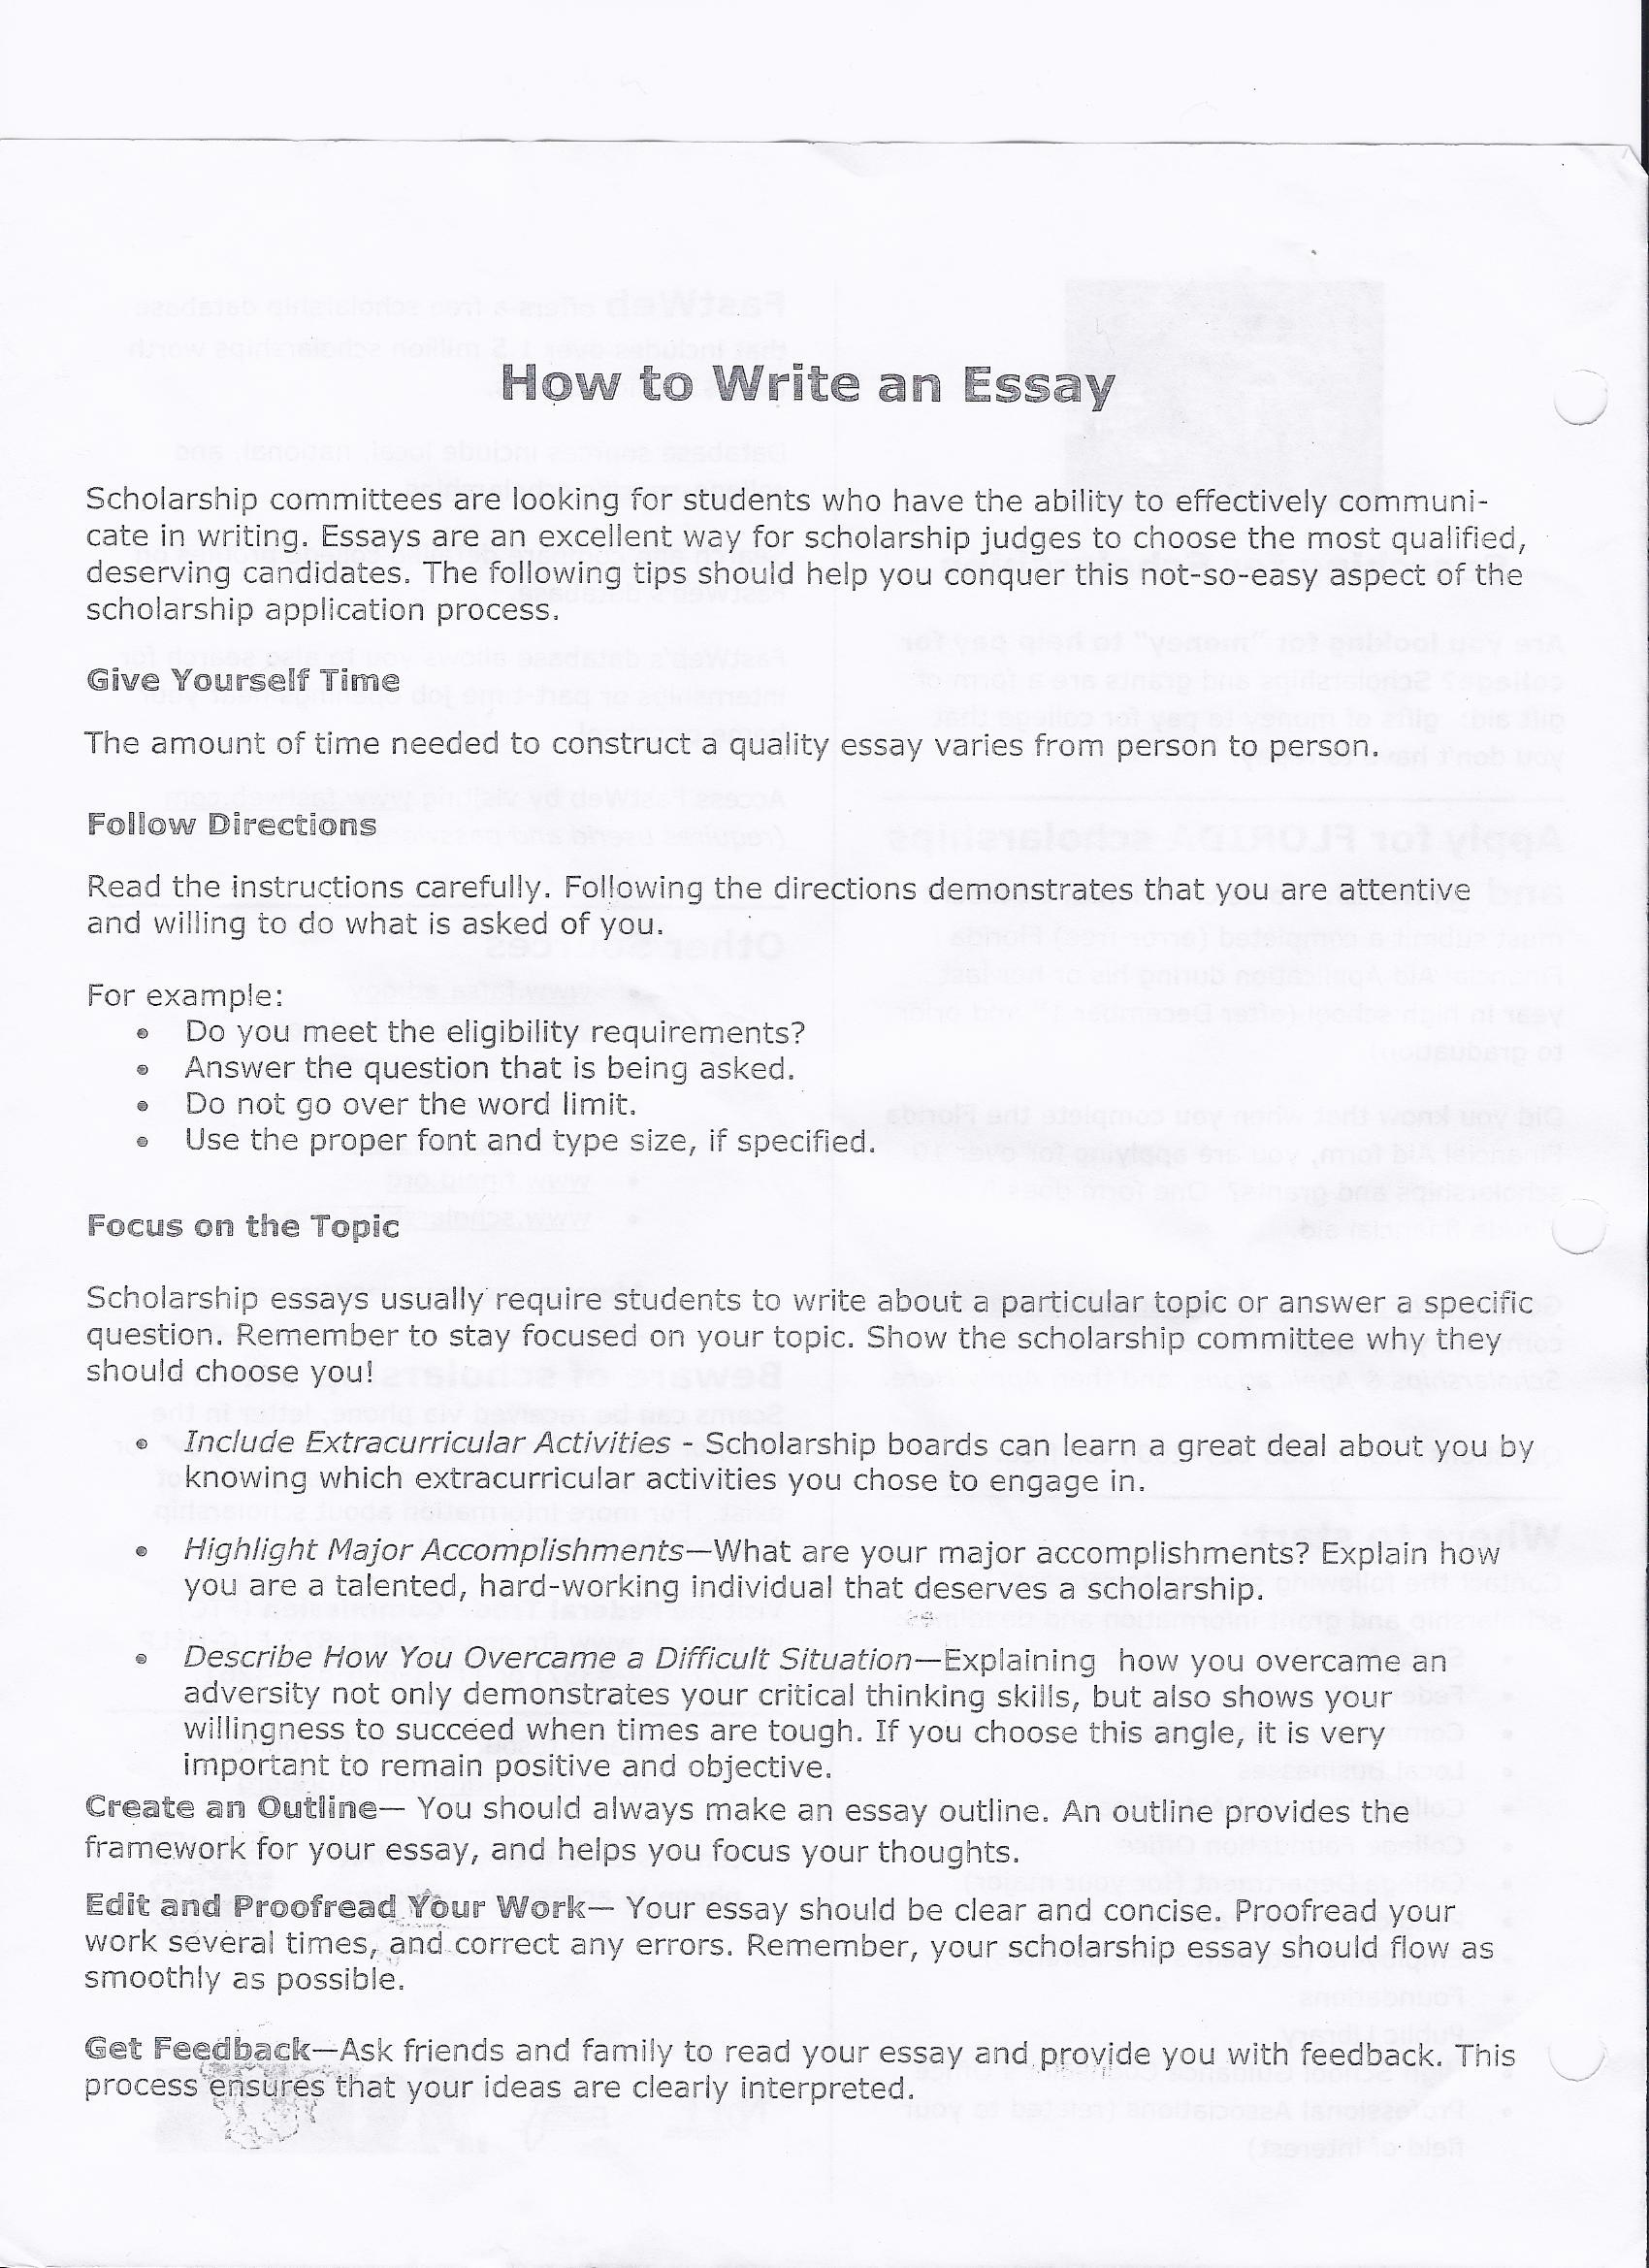 getting older essay collage essay collage essay collage essay  collage essay collage essay collage essay jonathon lay personal collage essaycollage essay buy key stage geography